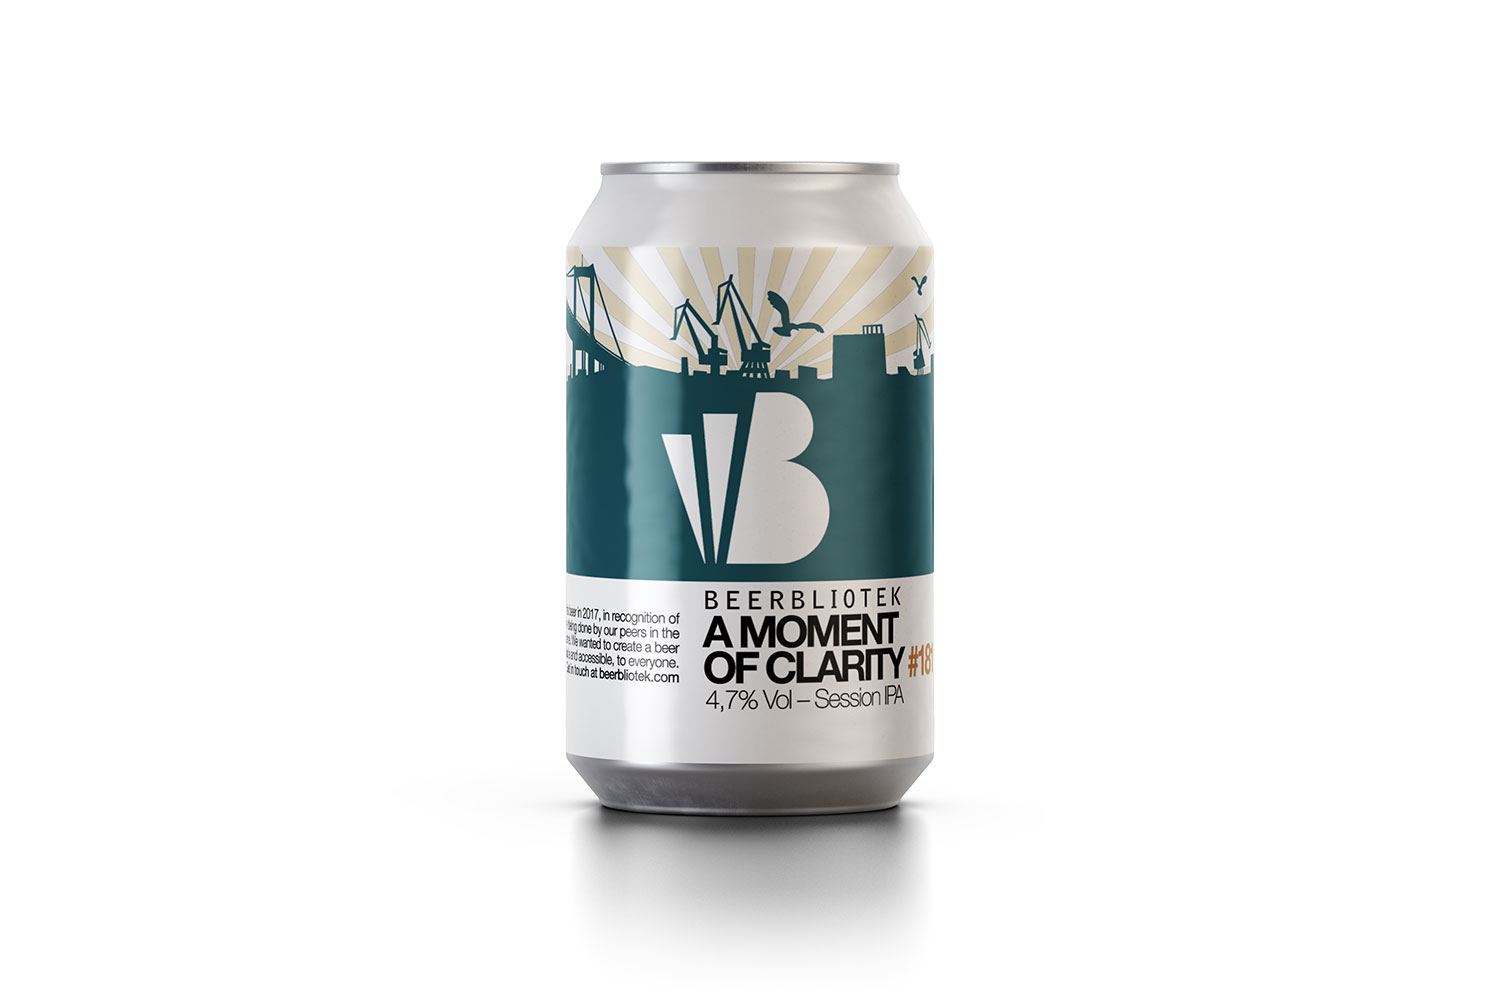 Darryl-de-Necker-Beerbliotek-A-moment-of-clarity-Can-Packshot